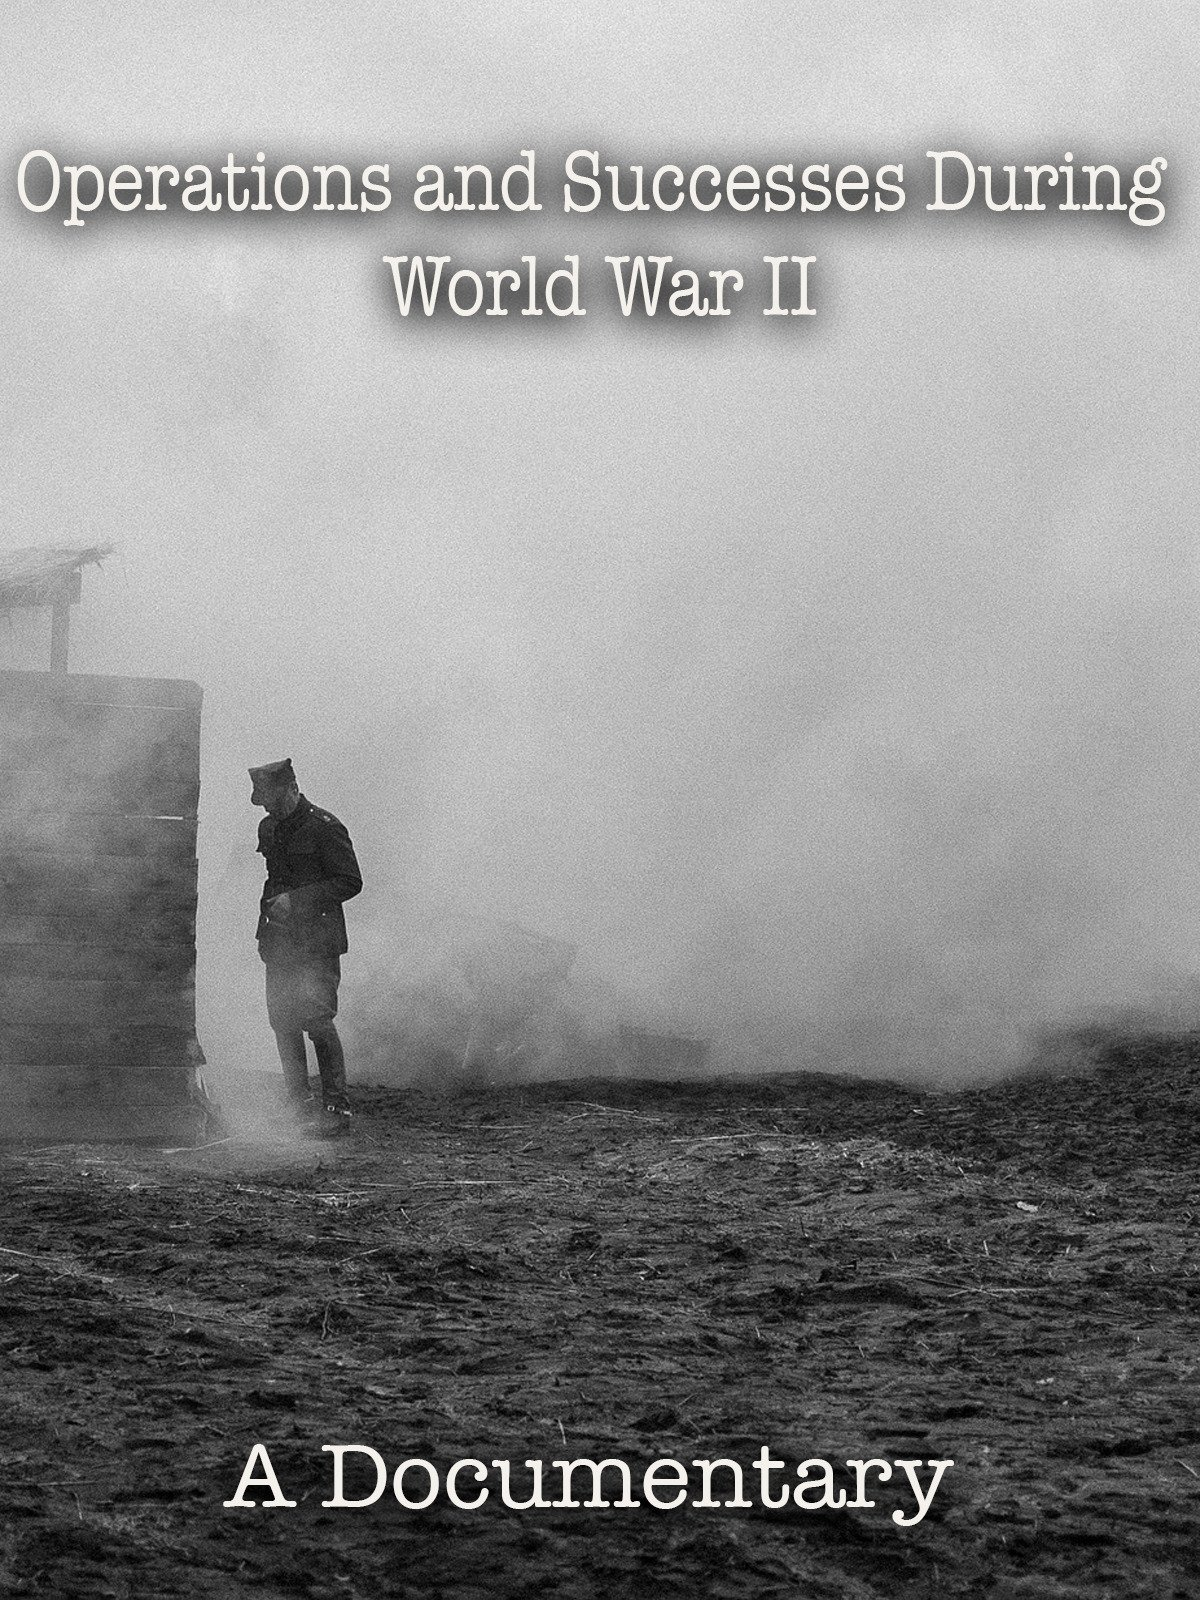 Operations and Successes During World War II A Documentary